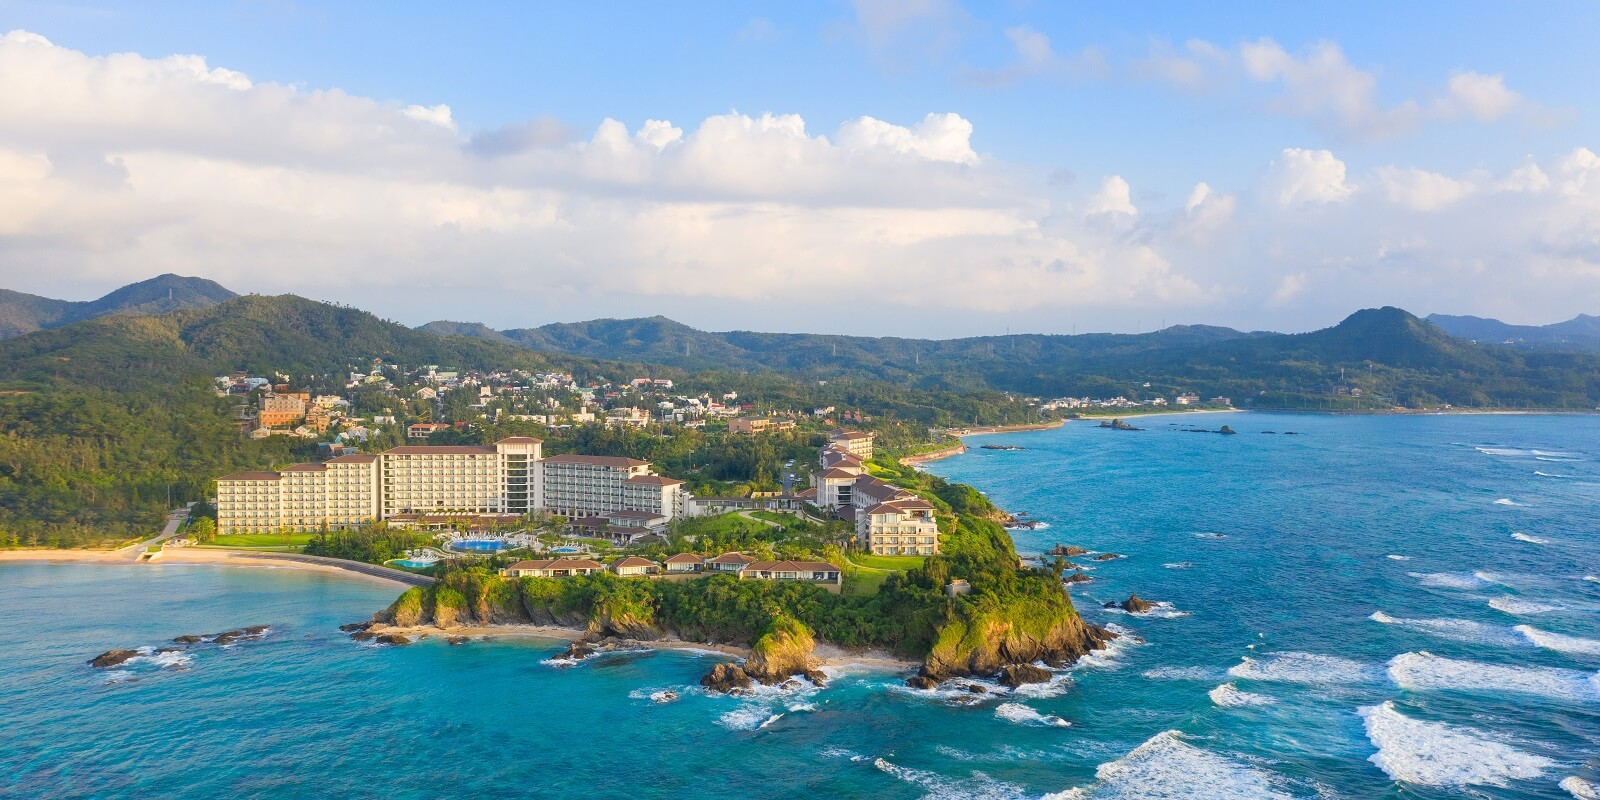 Safe and luxurious staycation package in Okinawa